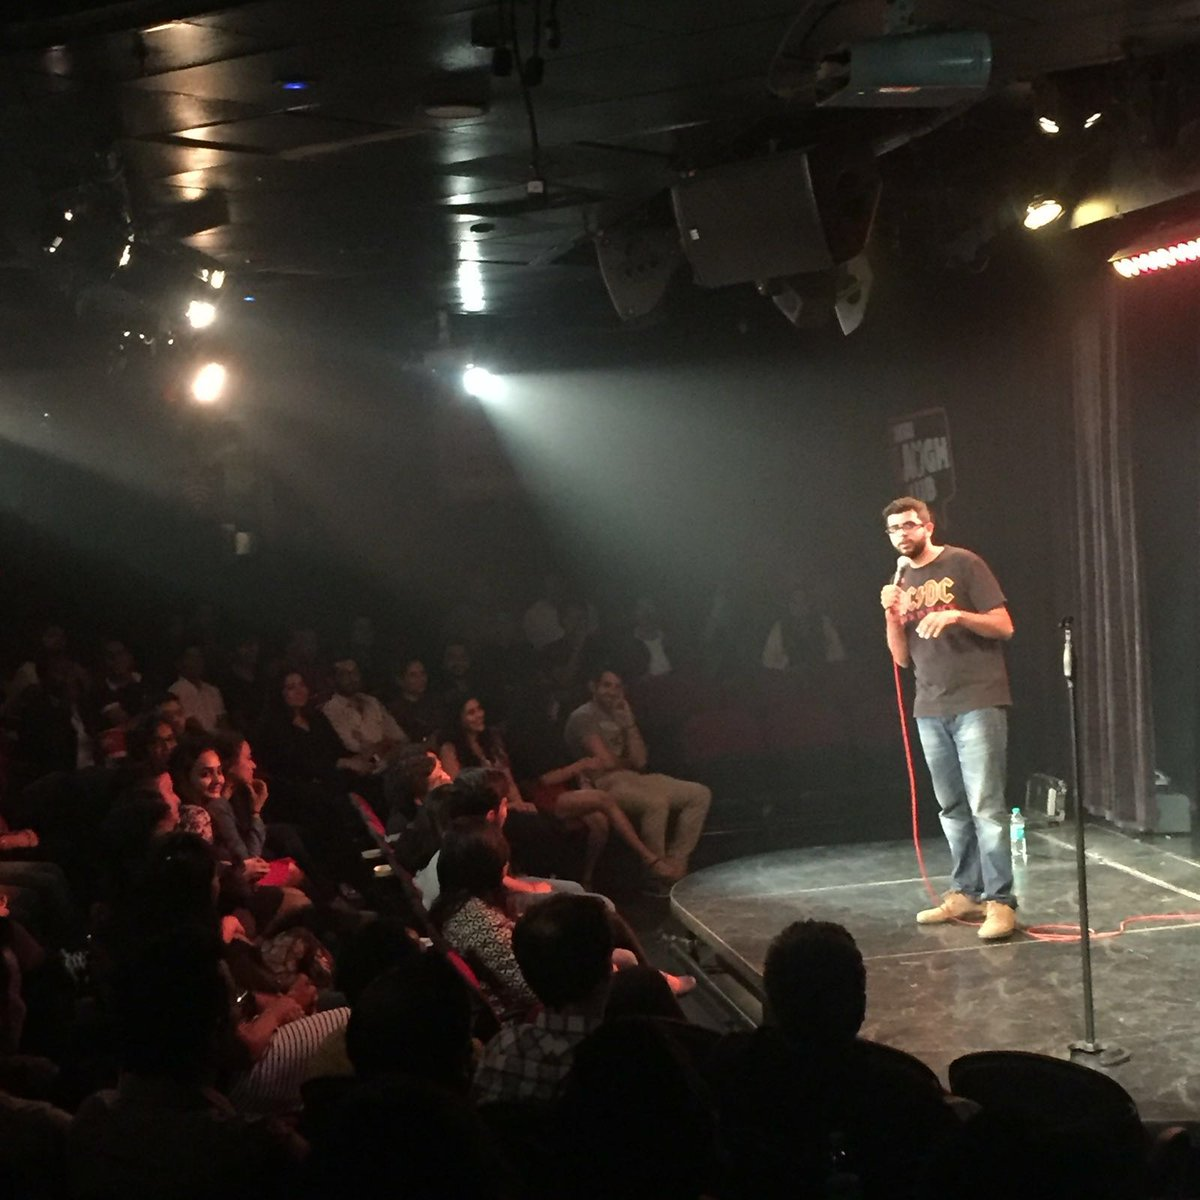 RT @canvaslaughclub: First act of the night by @KuchBhiMehta  *round of applause* https://t.co/euoQTiscyE